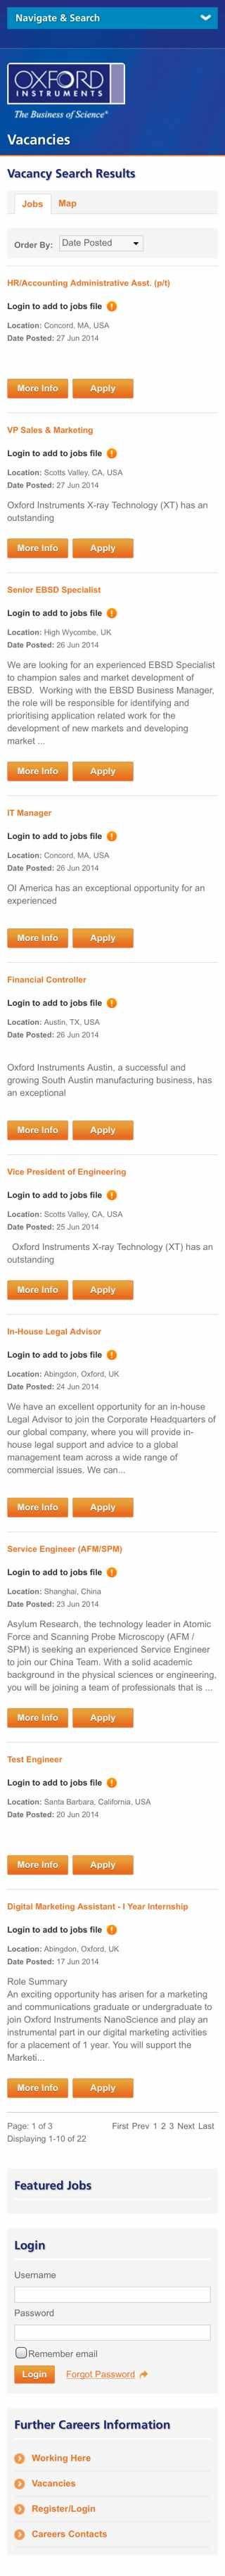 Oxford Instruments mobile-responsive vacancies page